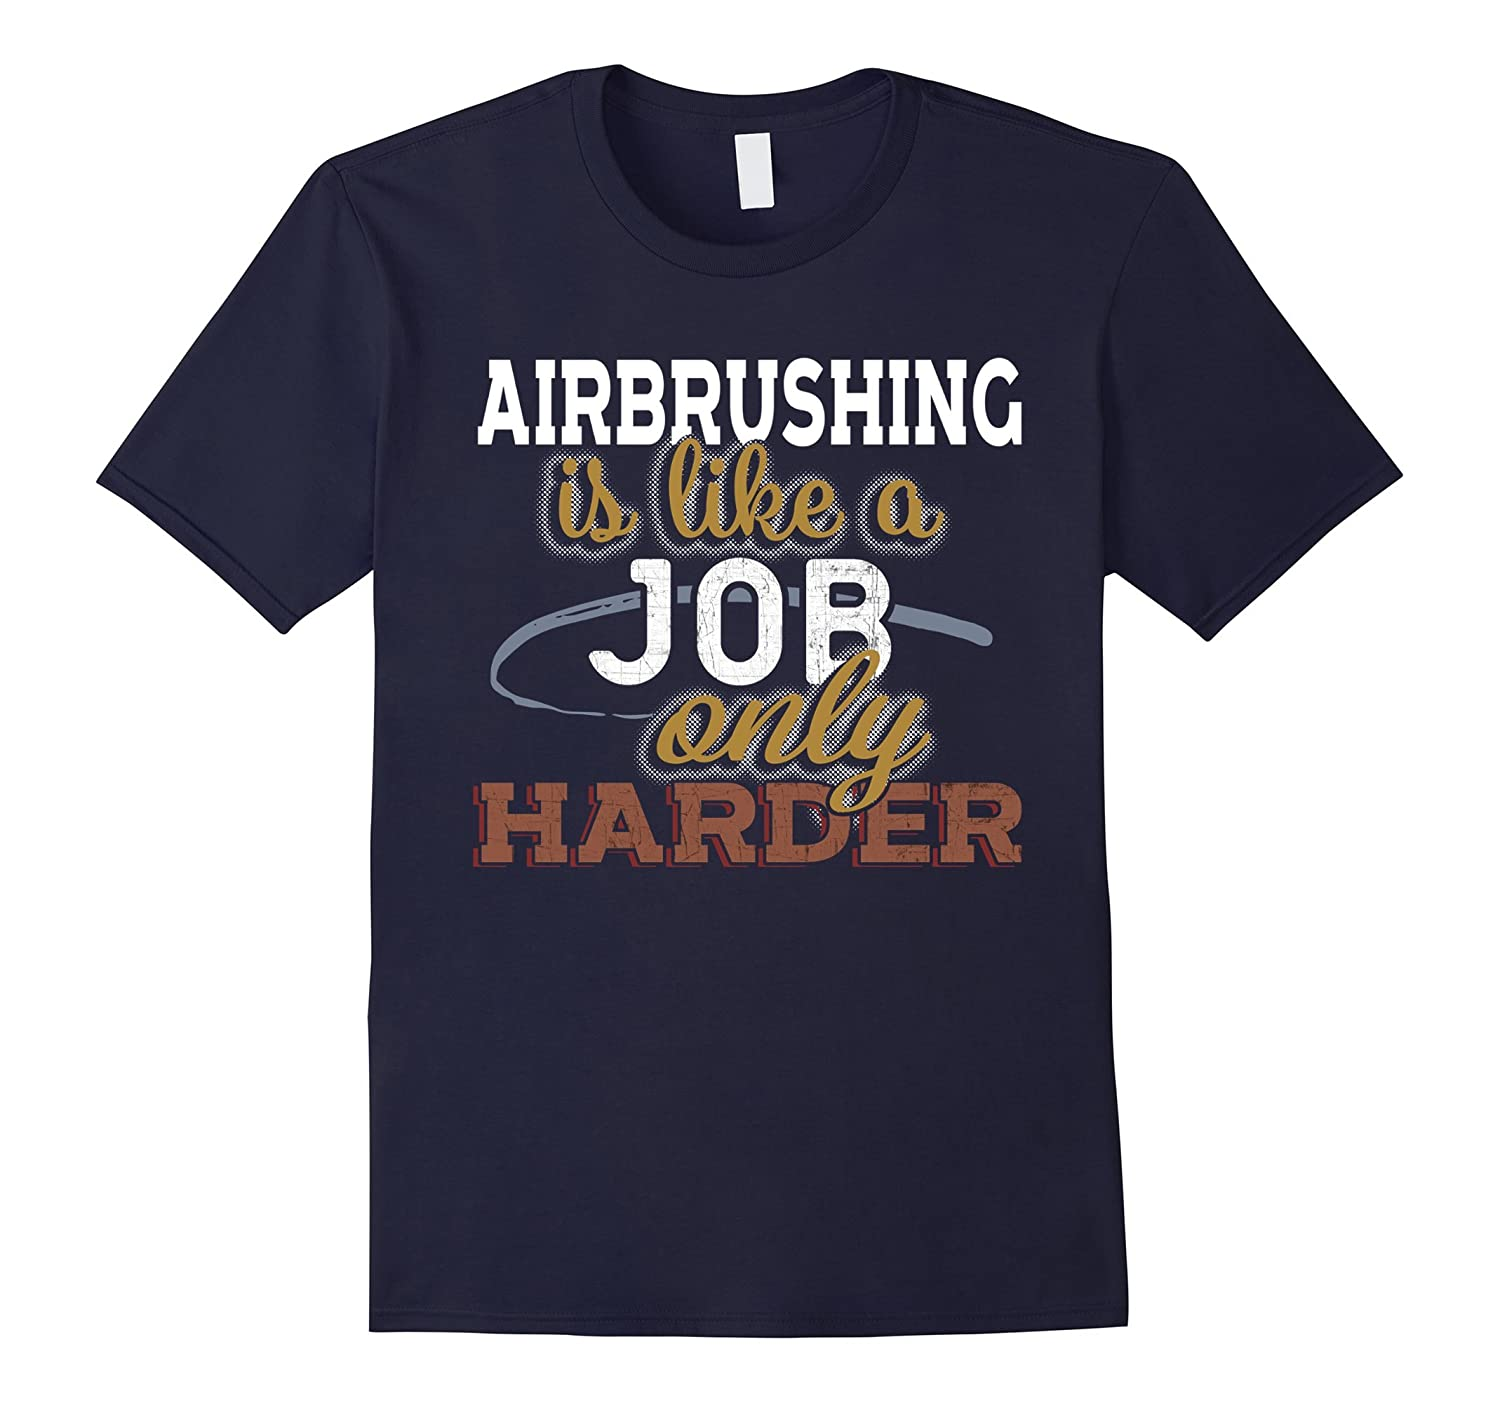 Airbrushing is Just Like a Job Only Harder T Shirt-TJ